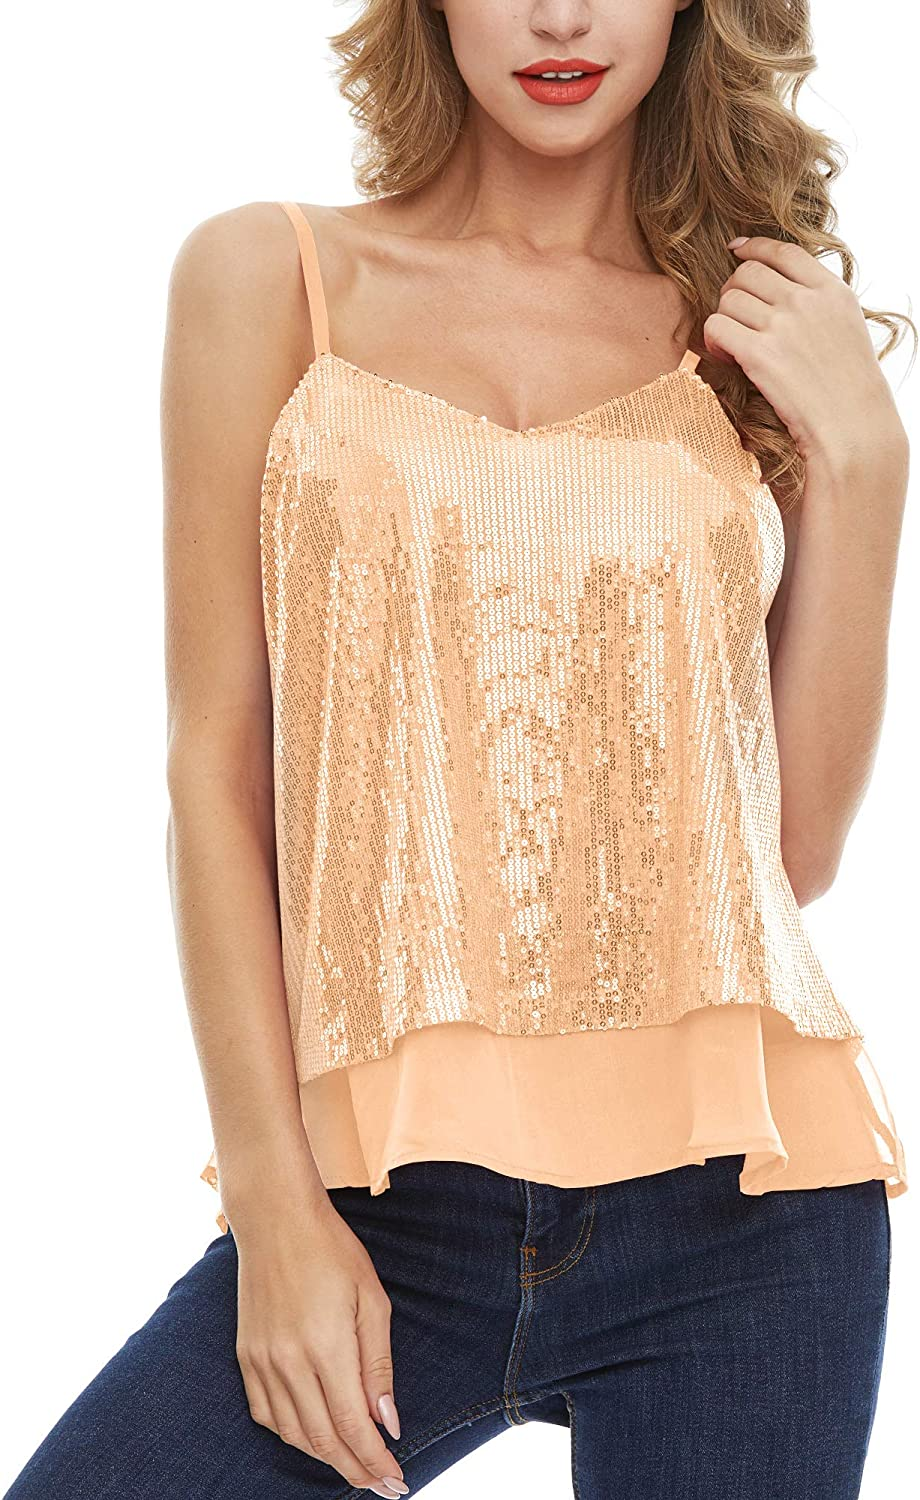 SATINIOR Womens Sleeveless Shining Camisole Sequined Vest Sequin Tank Tops S-4XL